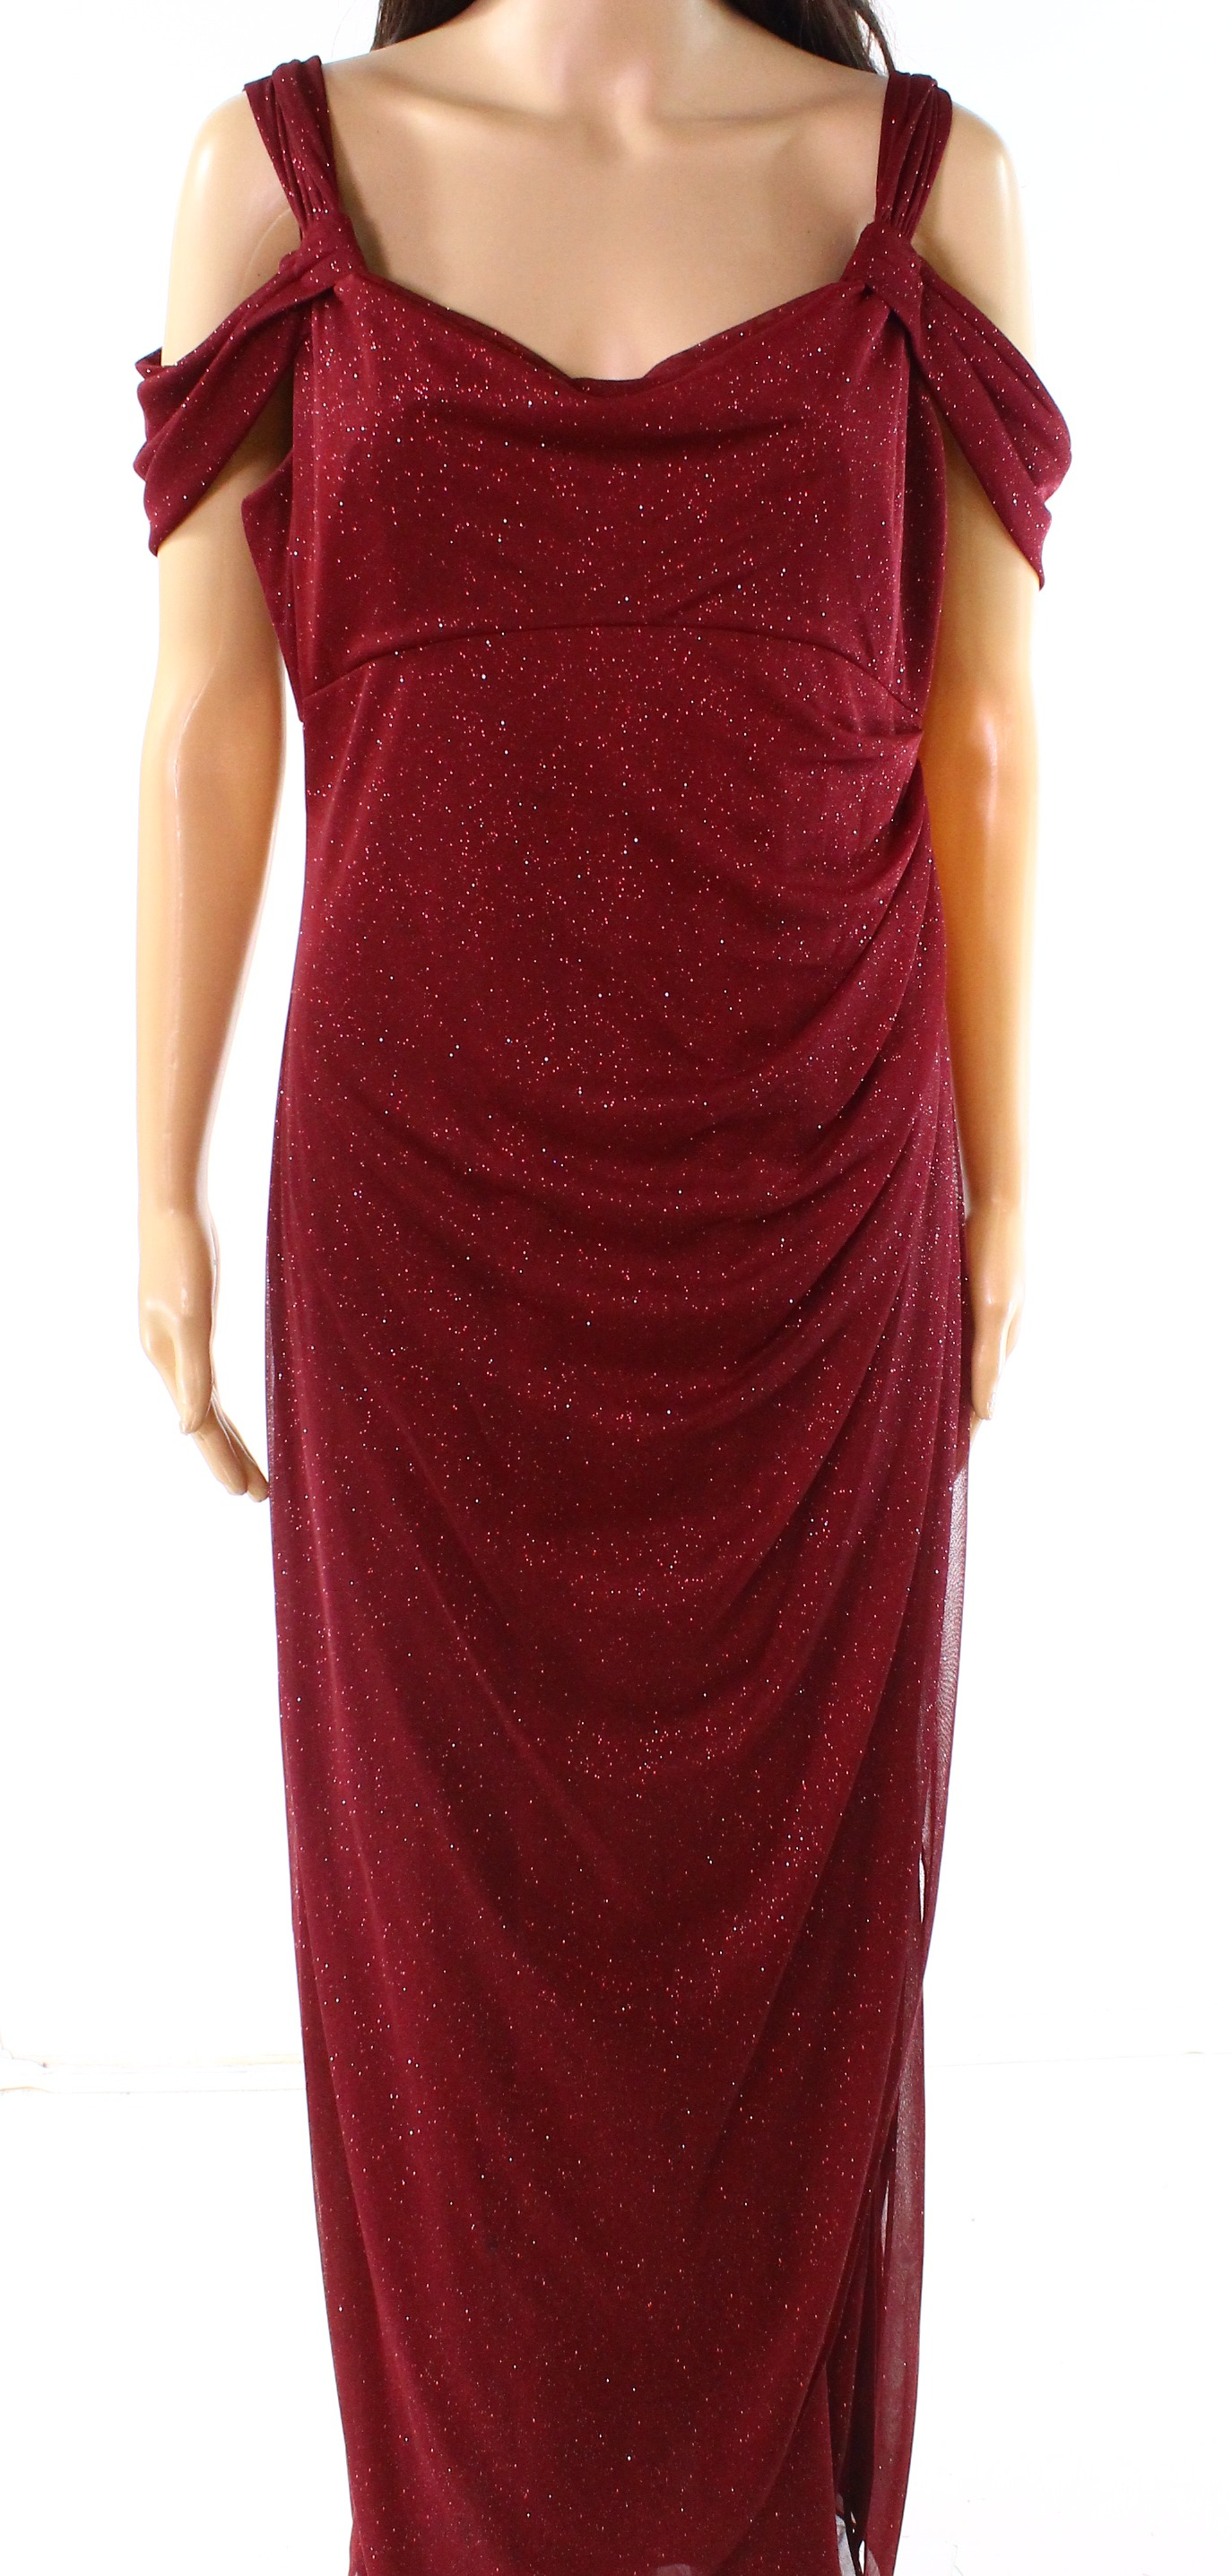 a09de05ddd653 Details about Alex Evenings NEW Red Womens Size 12P Petite Cold-Shoulder Gown  Dress $139- 059